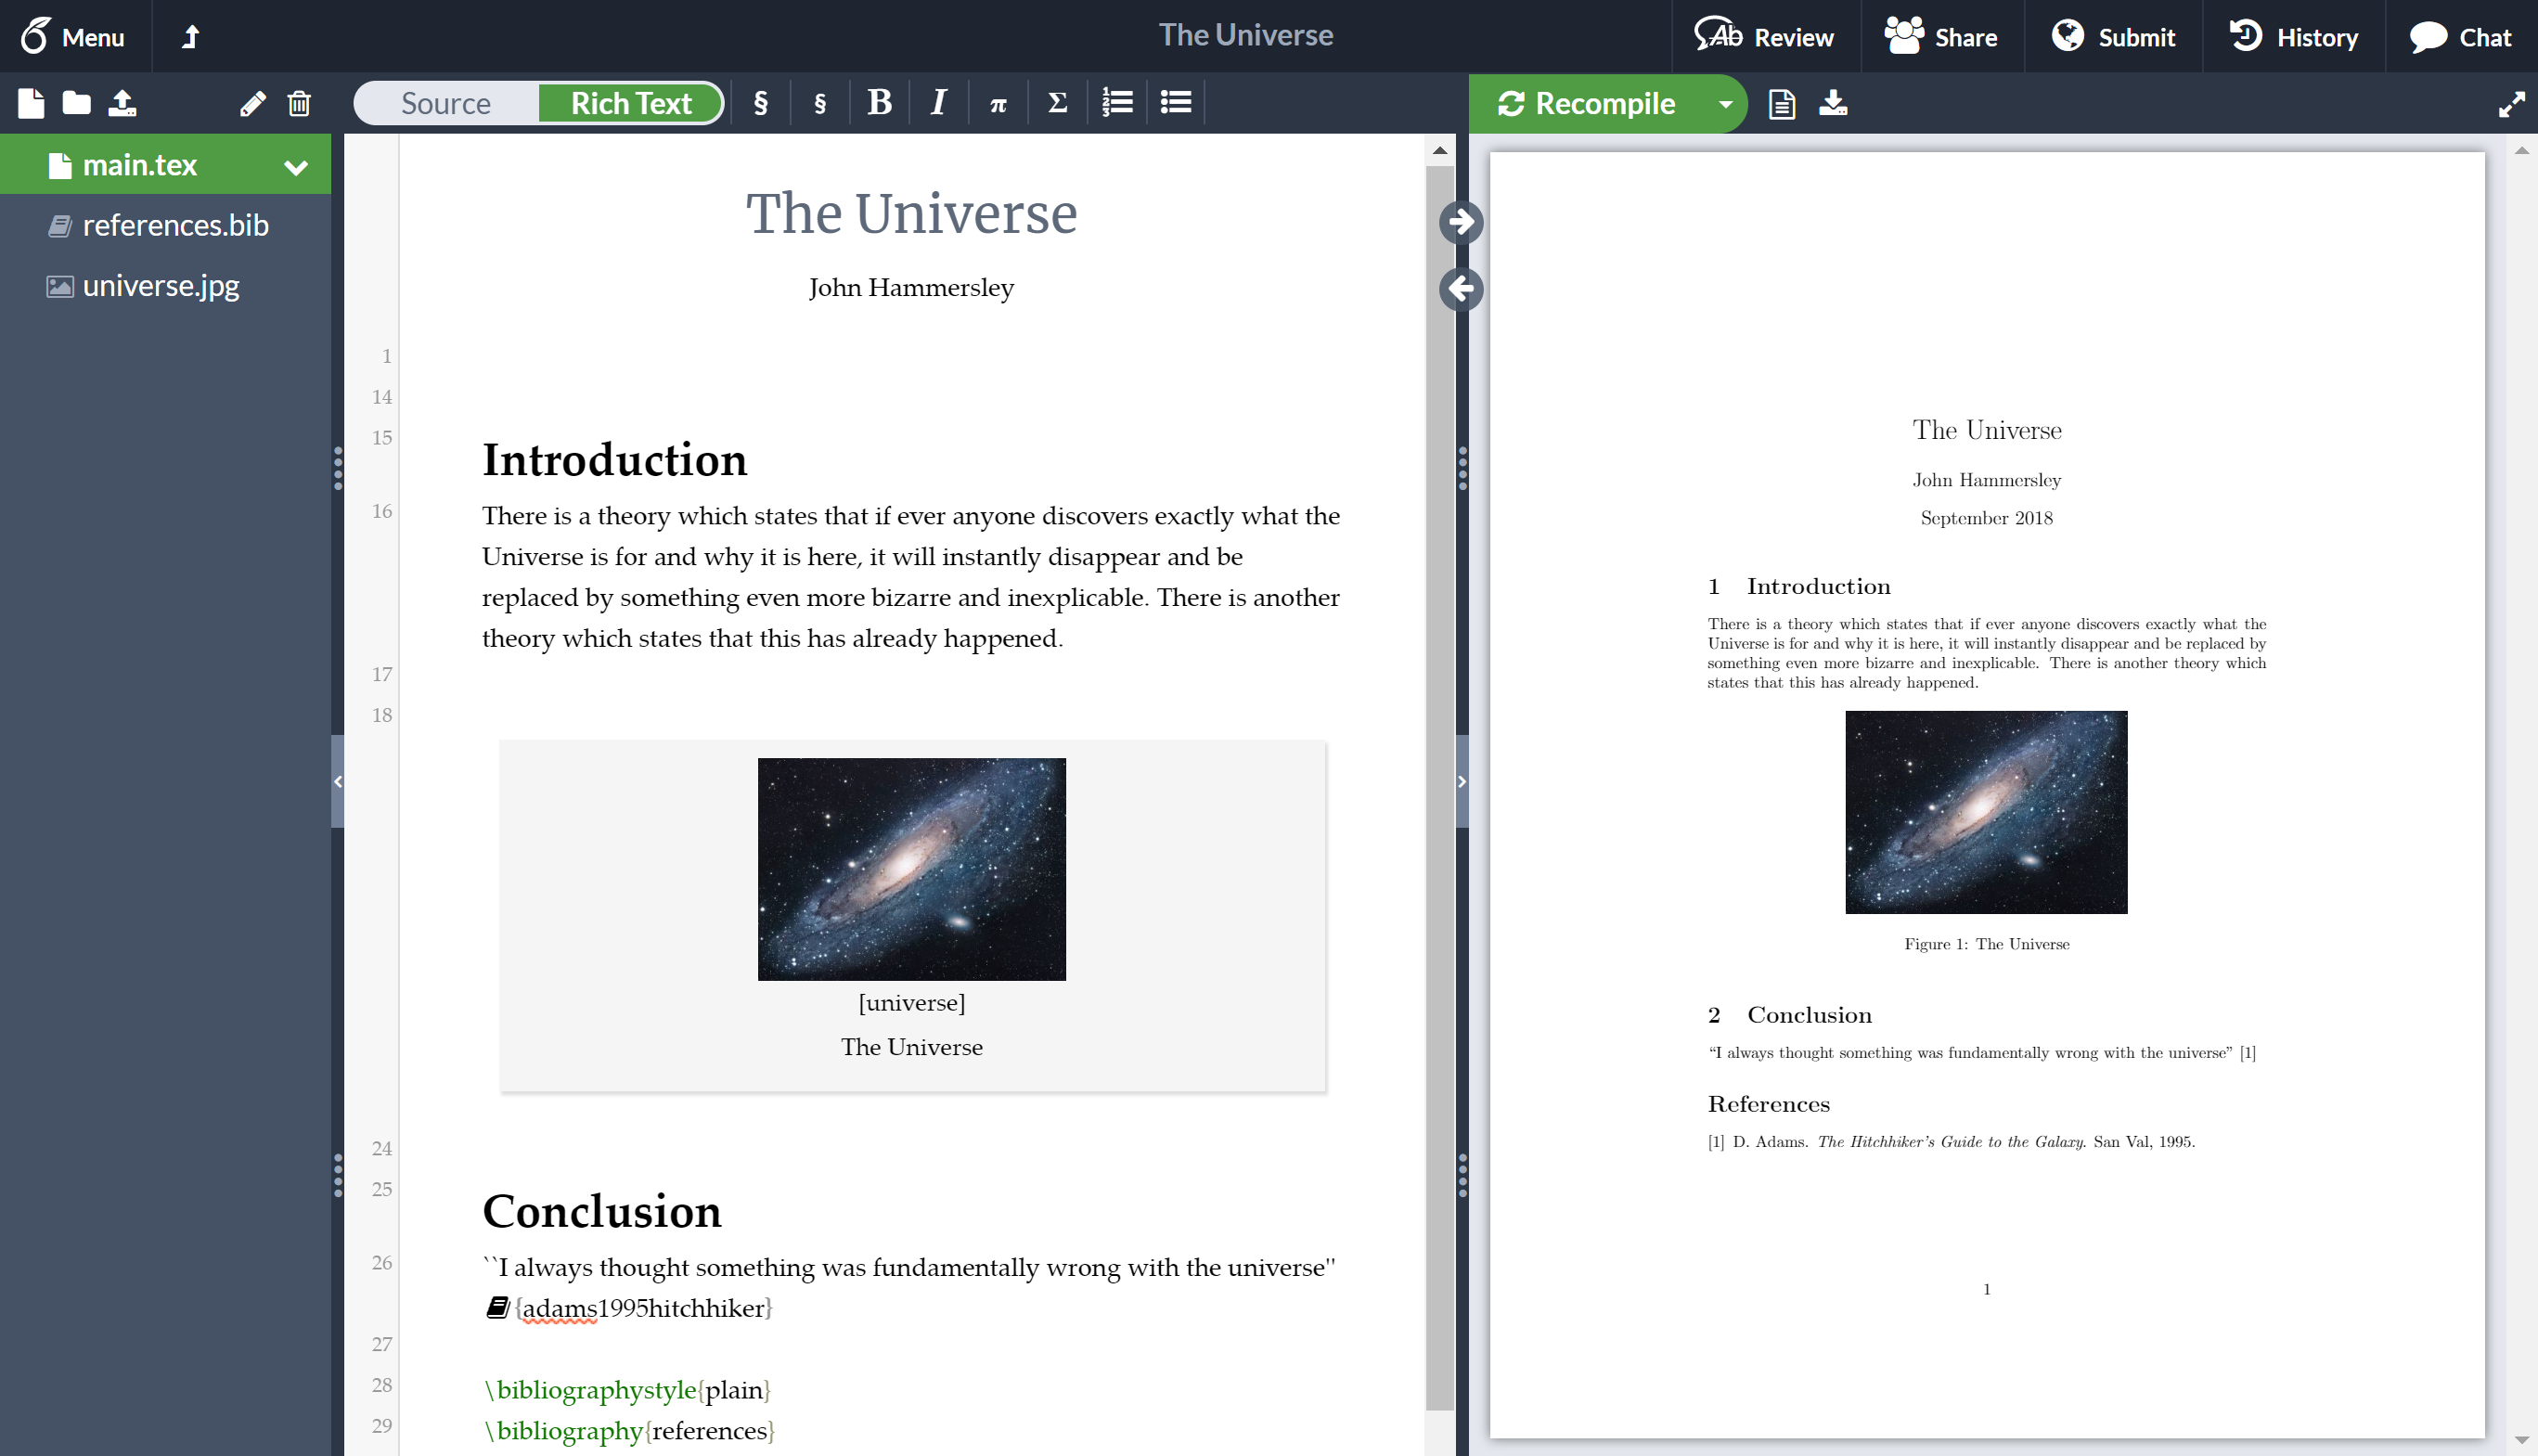 overleaf-in-browser-rich-text